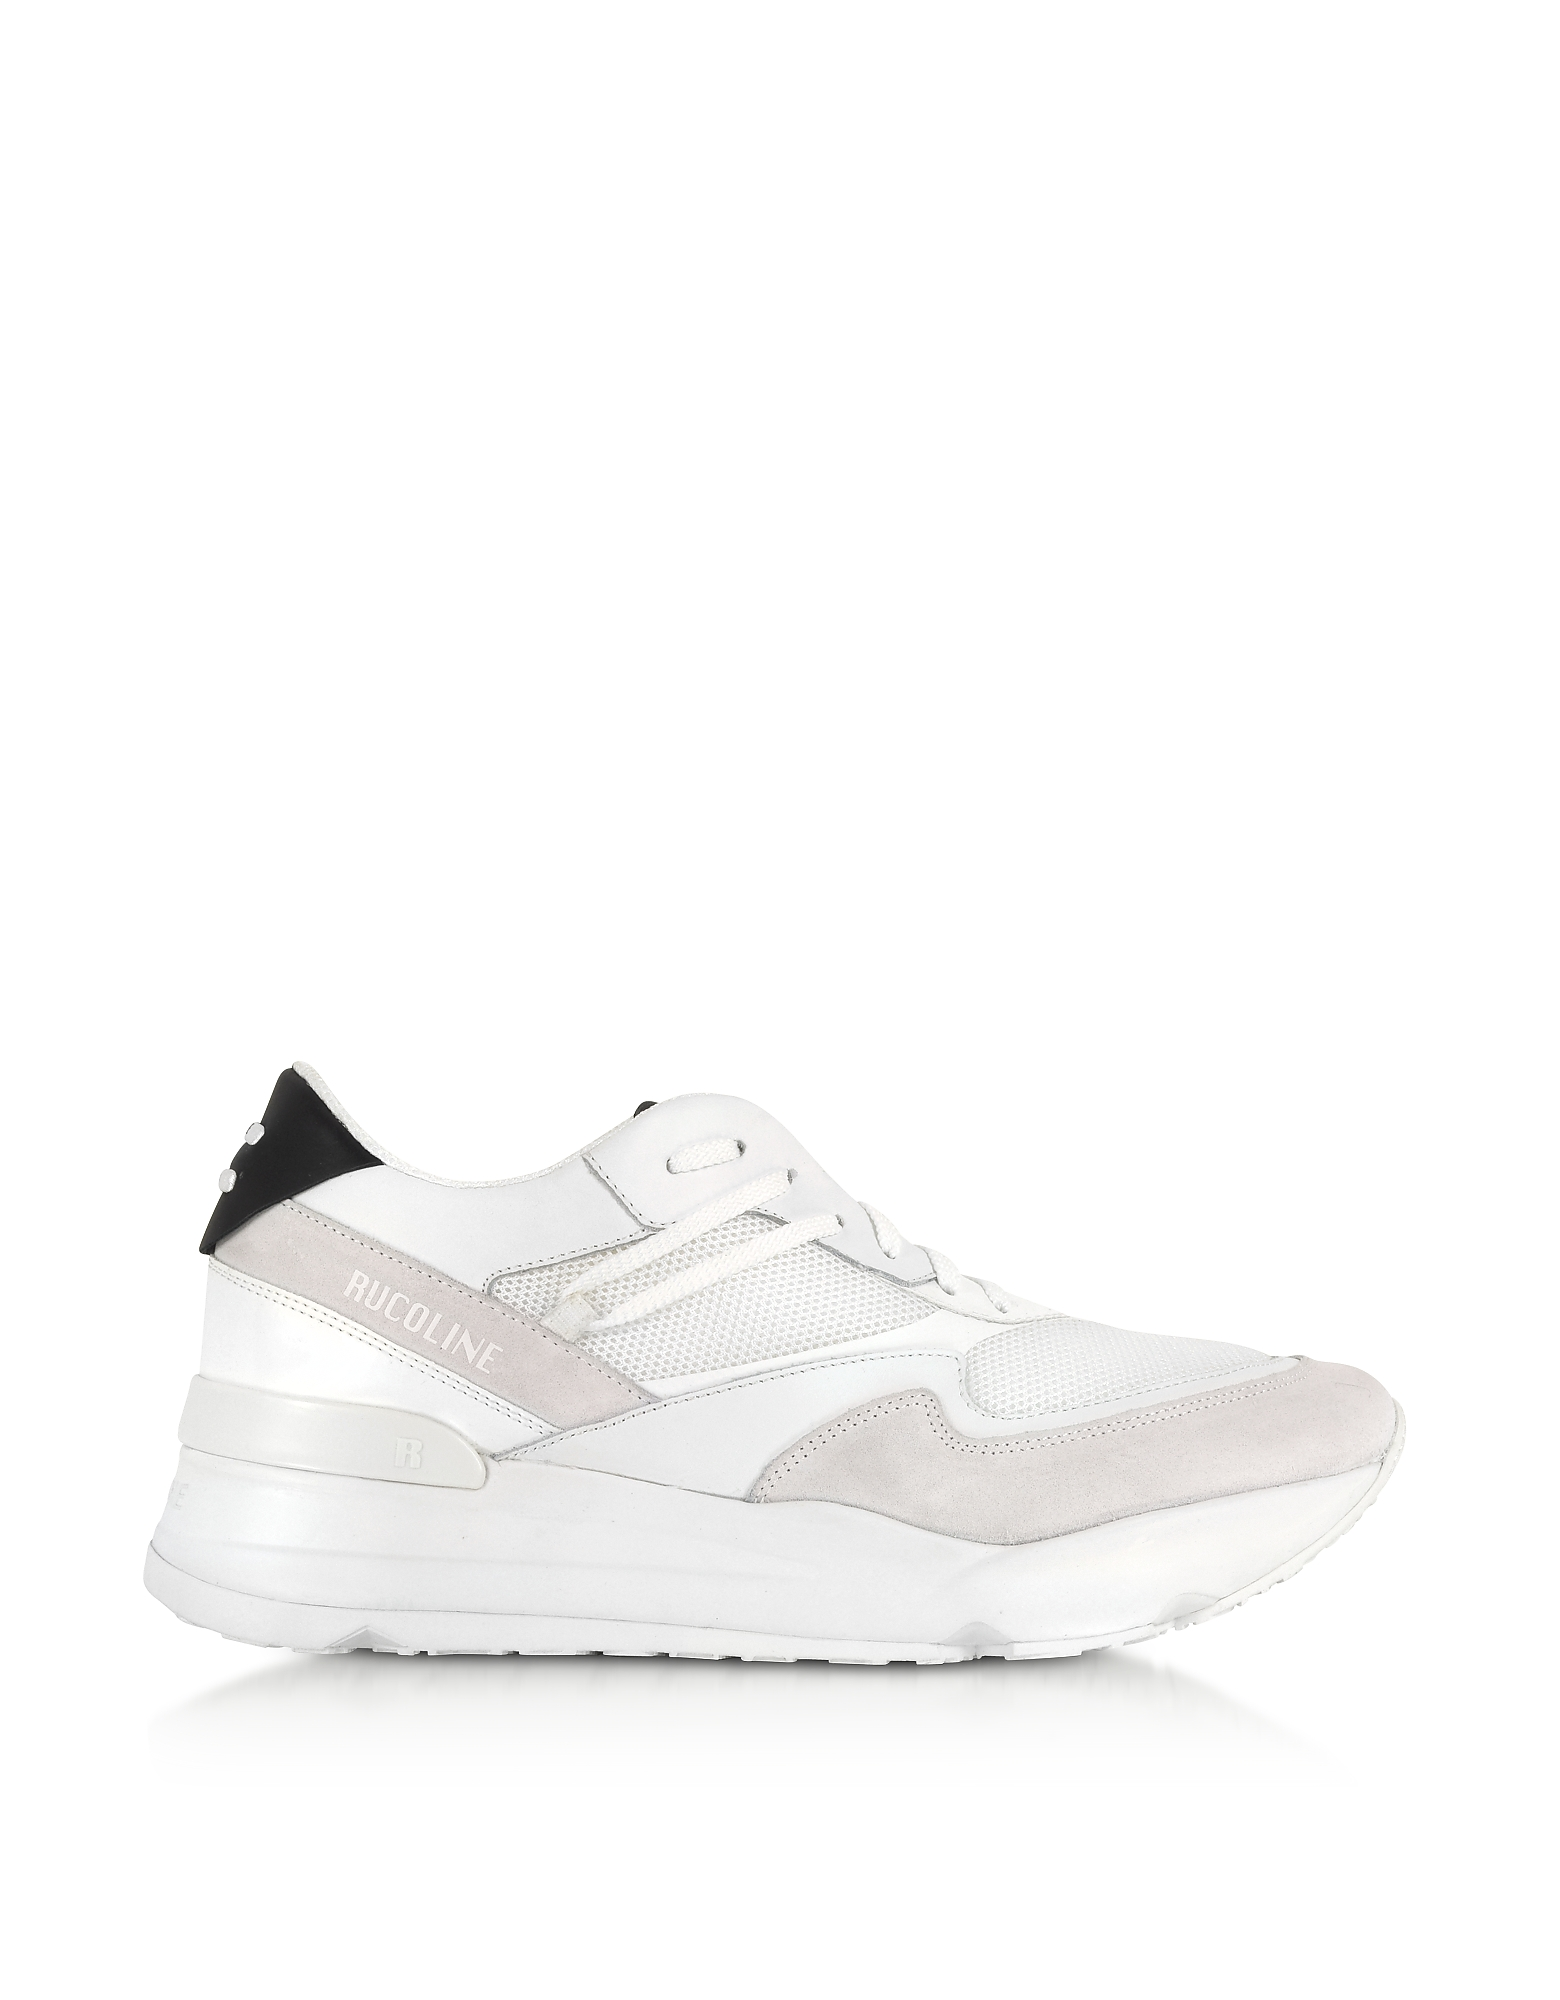 Rucoline Designer Shoes, White Nylon and Leather R-Evolve Men's Sneakers